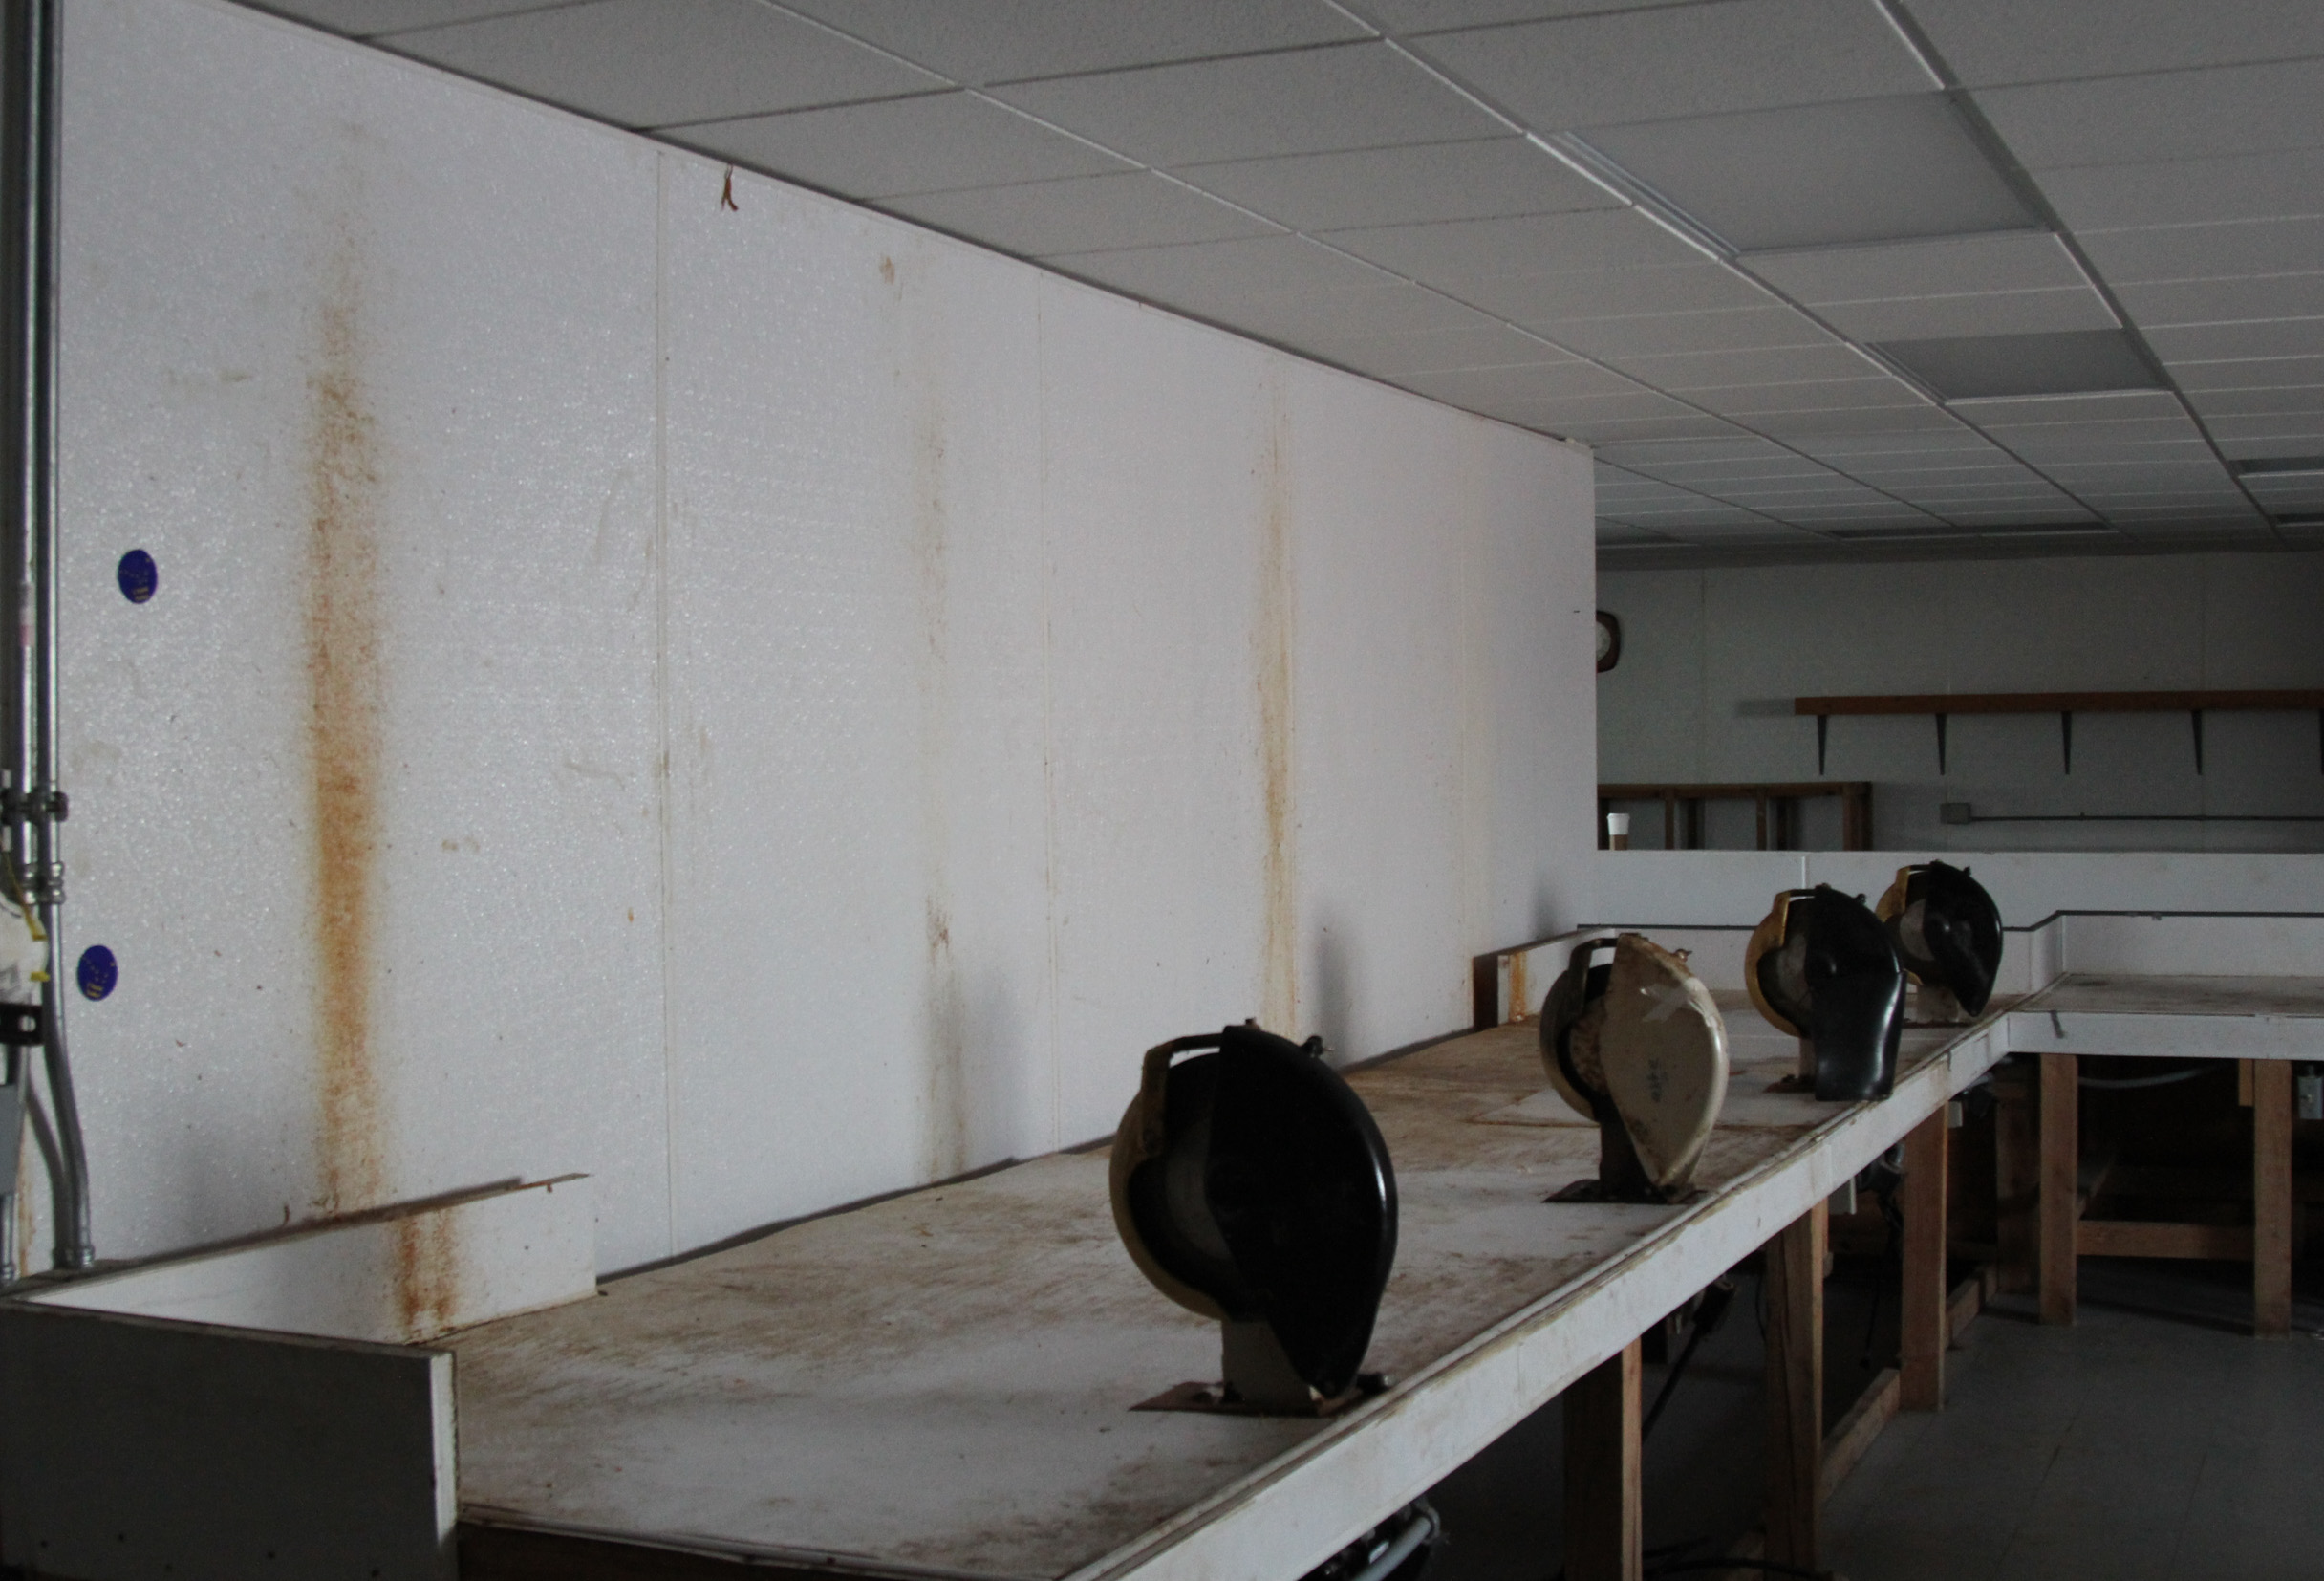 Fleshing machines had kicked off fat onto the walls. Dennis Sinook said they'd gotten to most of it, but run out of cleaning supplies before they could fully remove all the stains as the Shishmaref tannery was closed up for the season early in January. (Photo by Zachariah Hughes/Alaska Public Media)